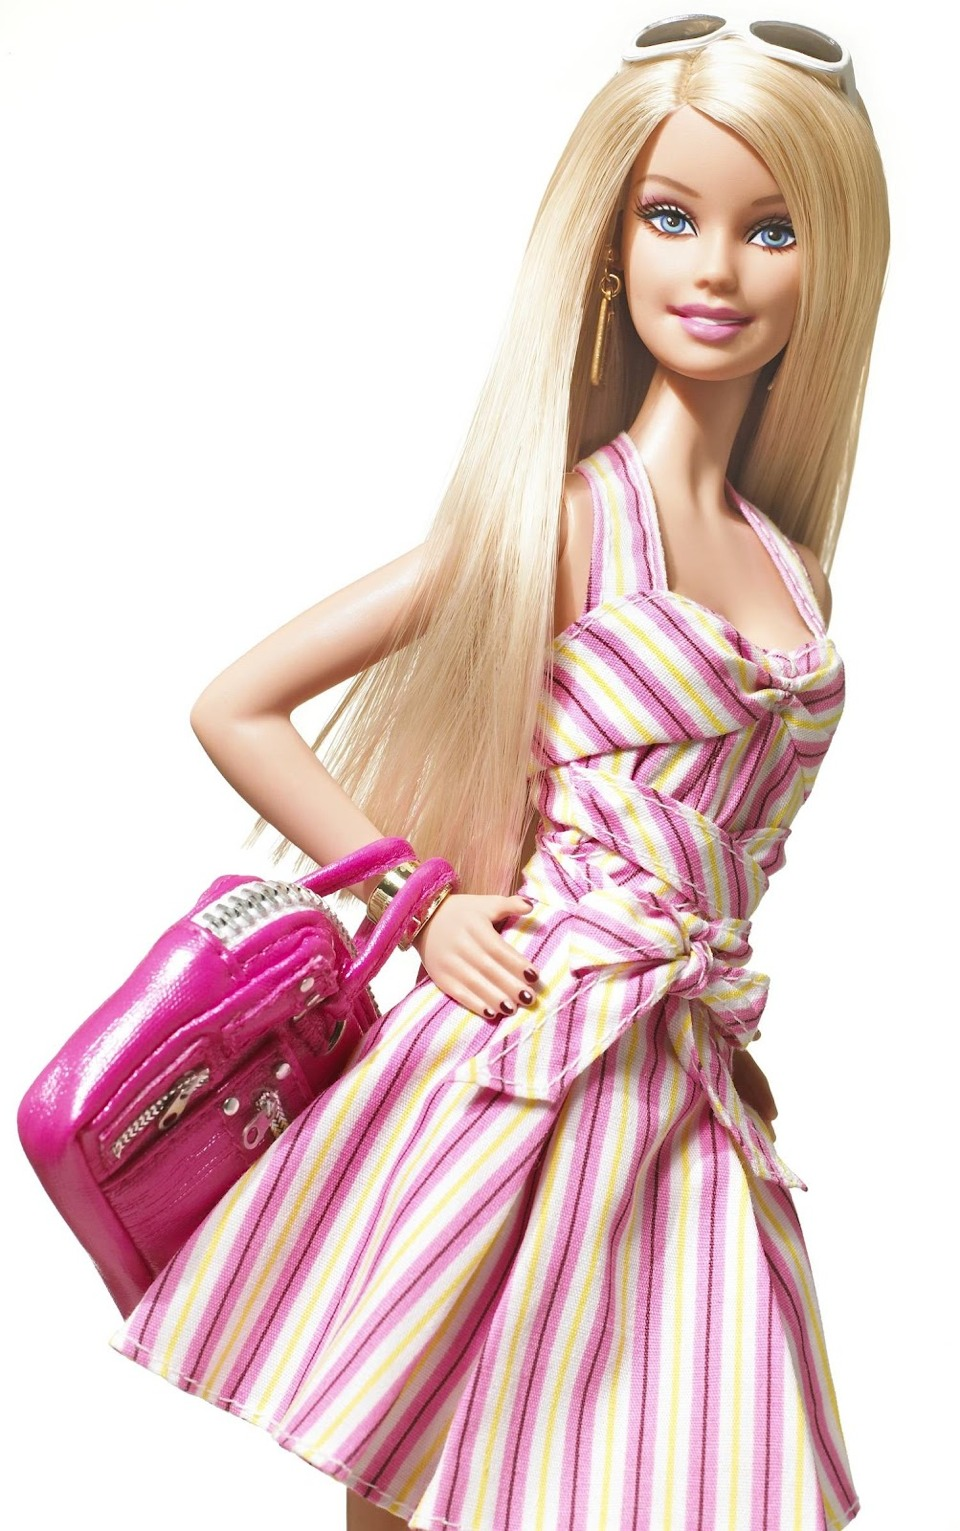 Need a Barbie of your choice